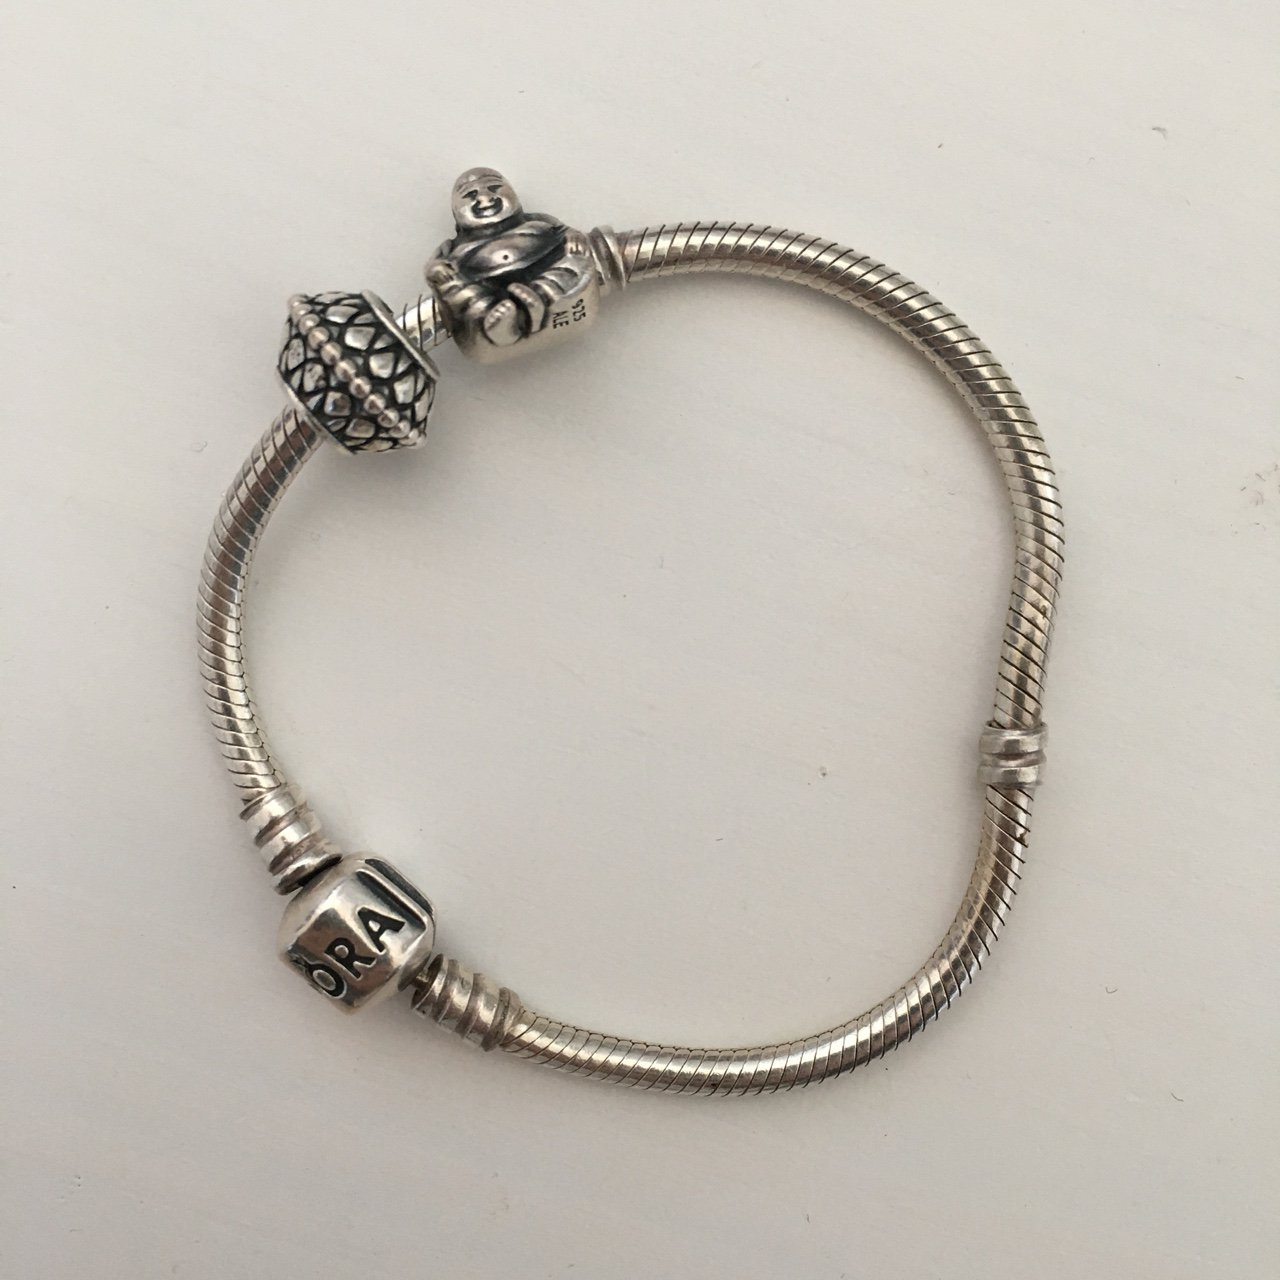 966eb53b1 Genuine pandora bracelet 16cm. With two charms. Can sell to - Depop